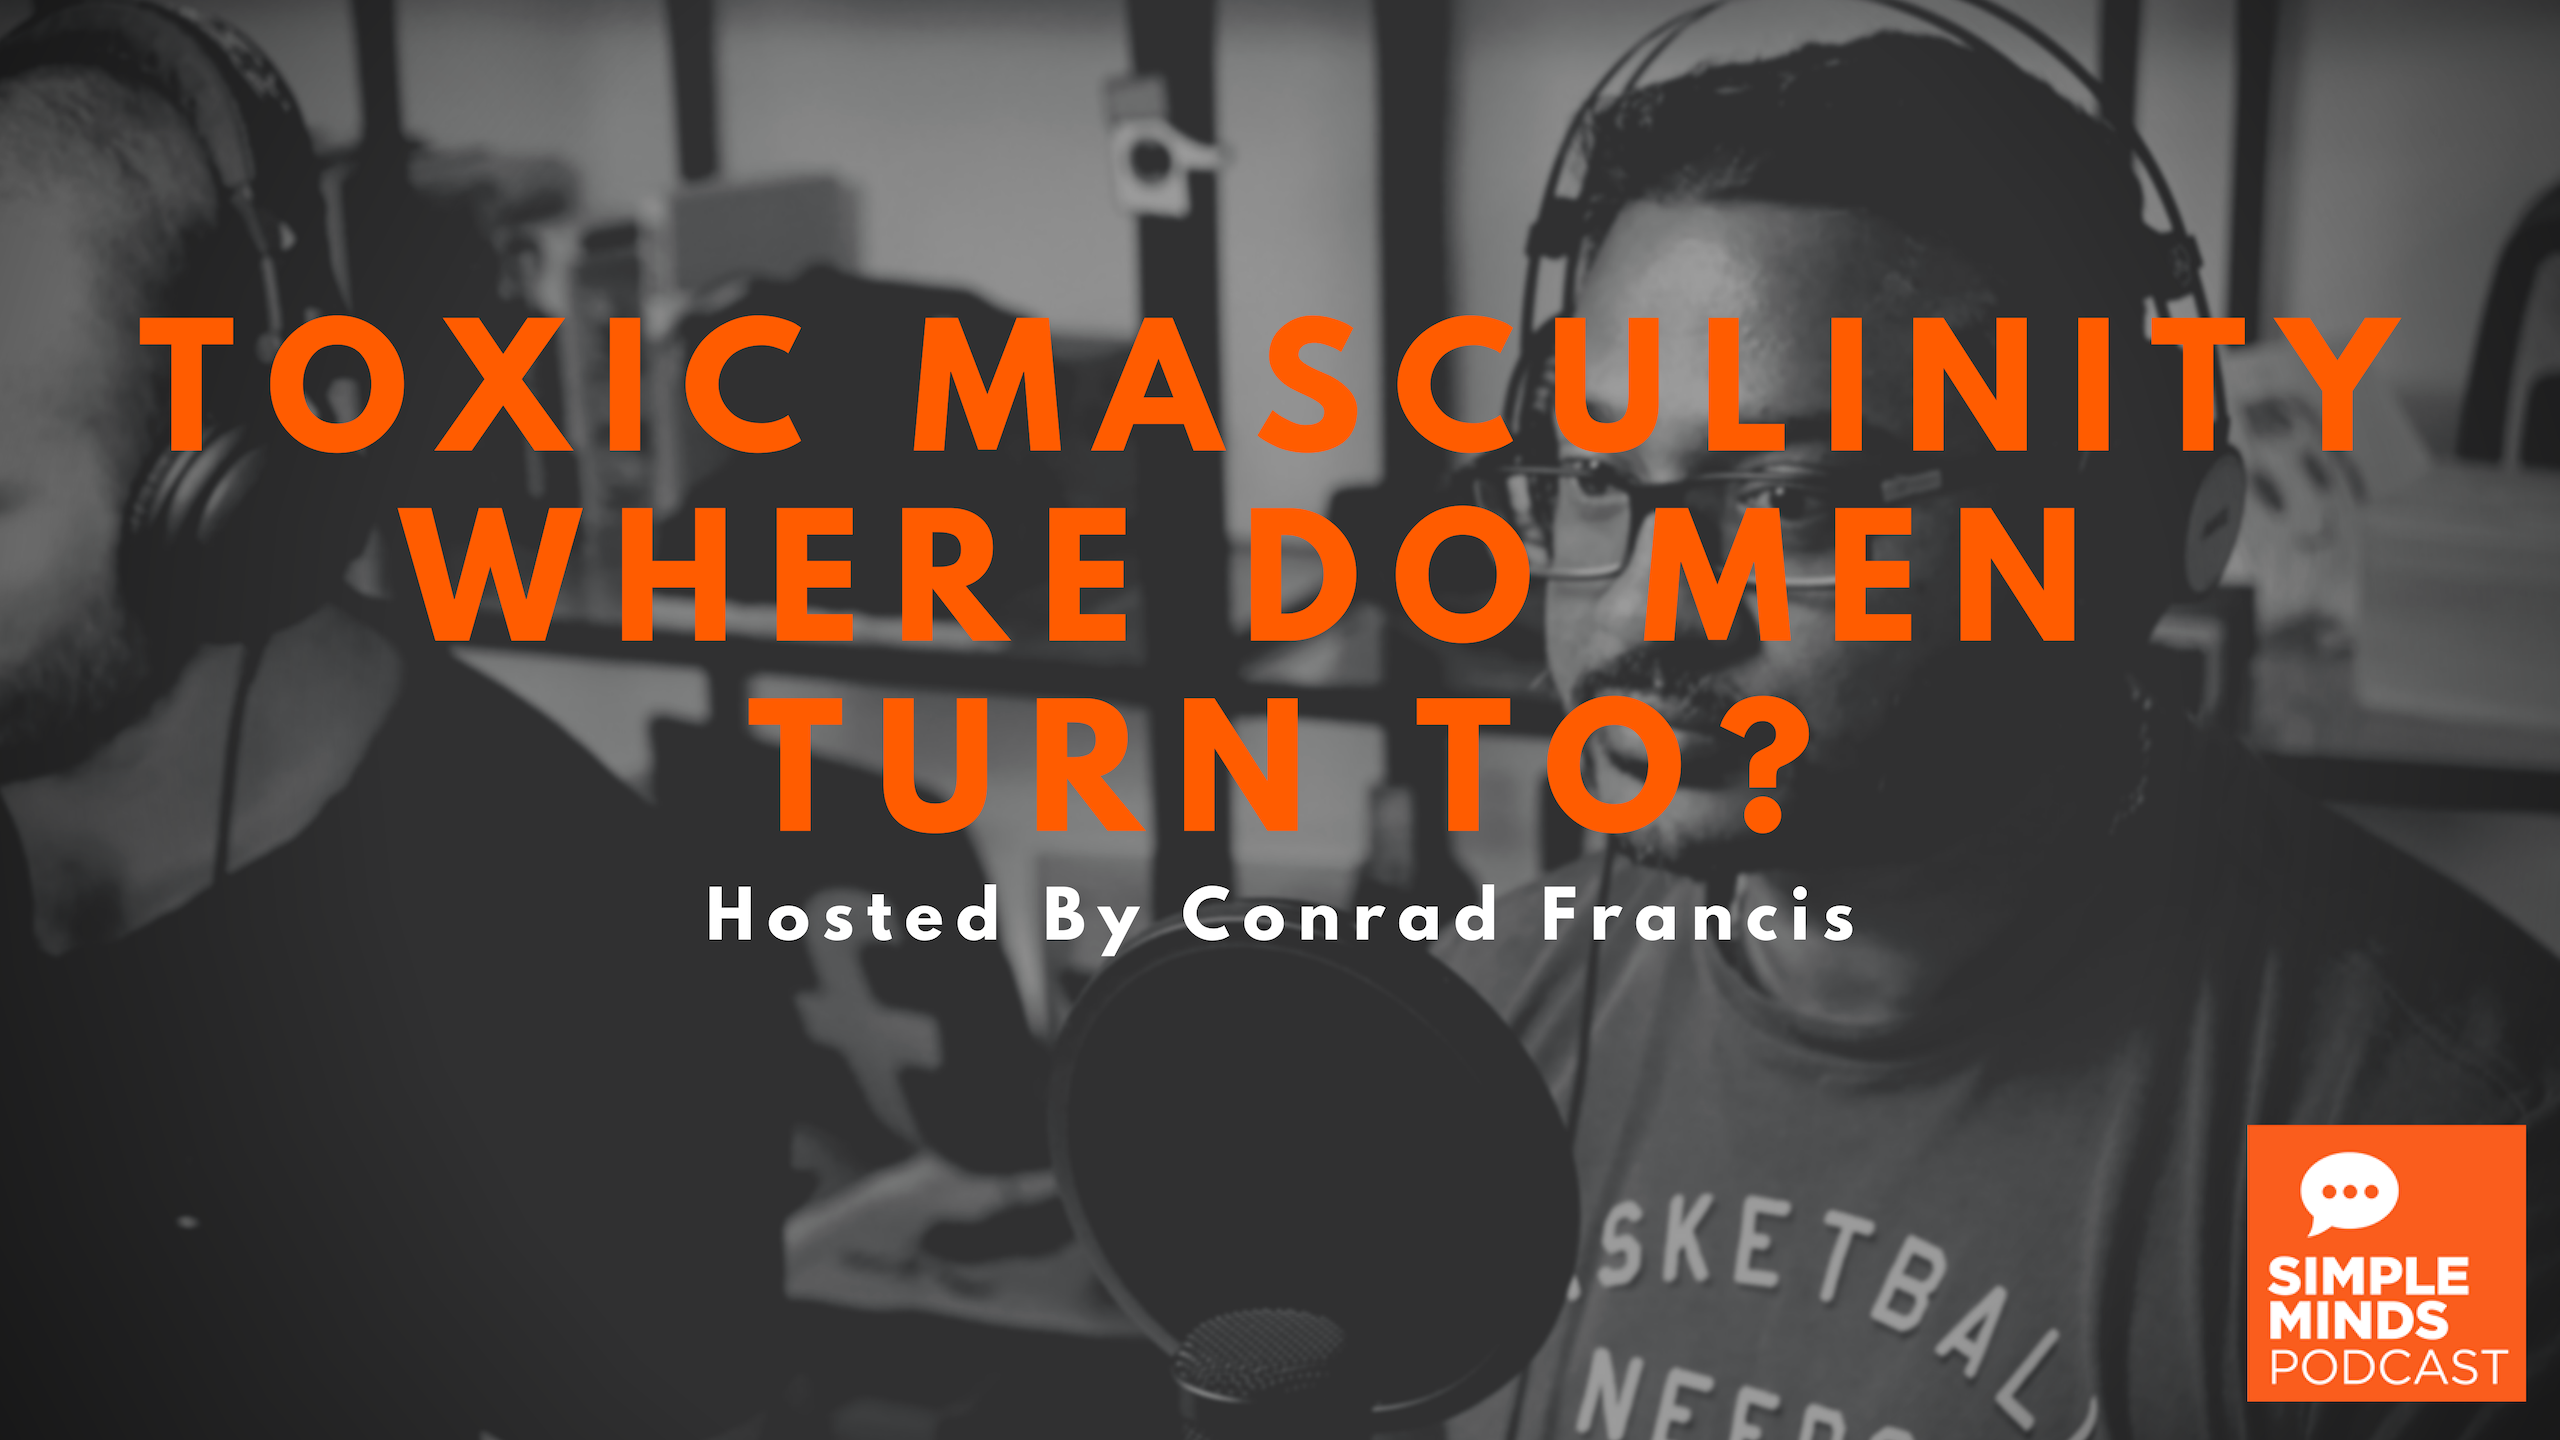 Toxic Masculinity - Where Do Men Turn To? - Simple Minds Podcast